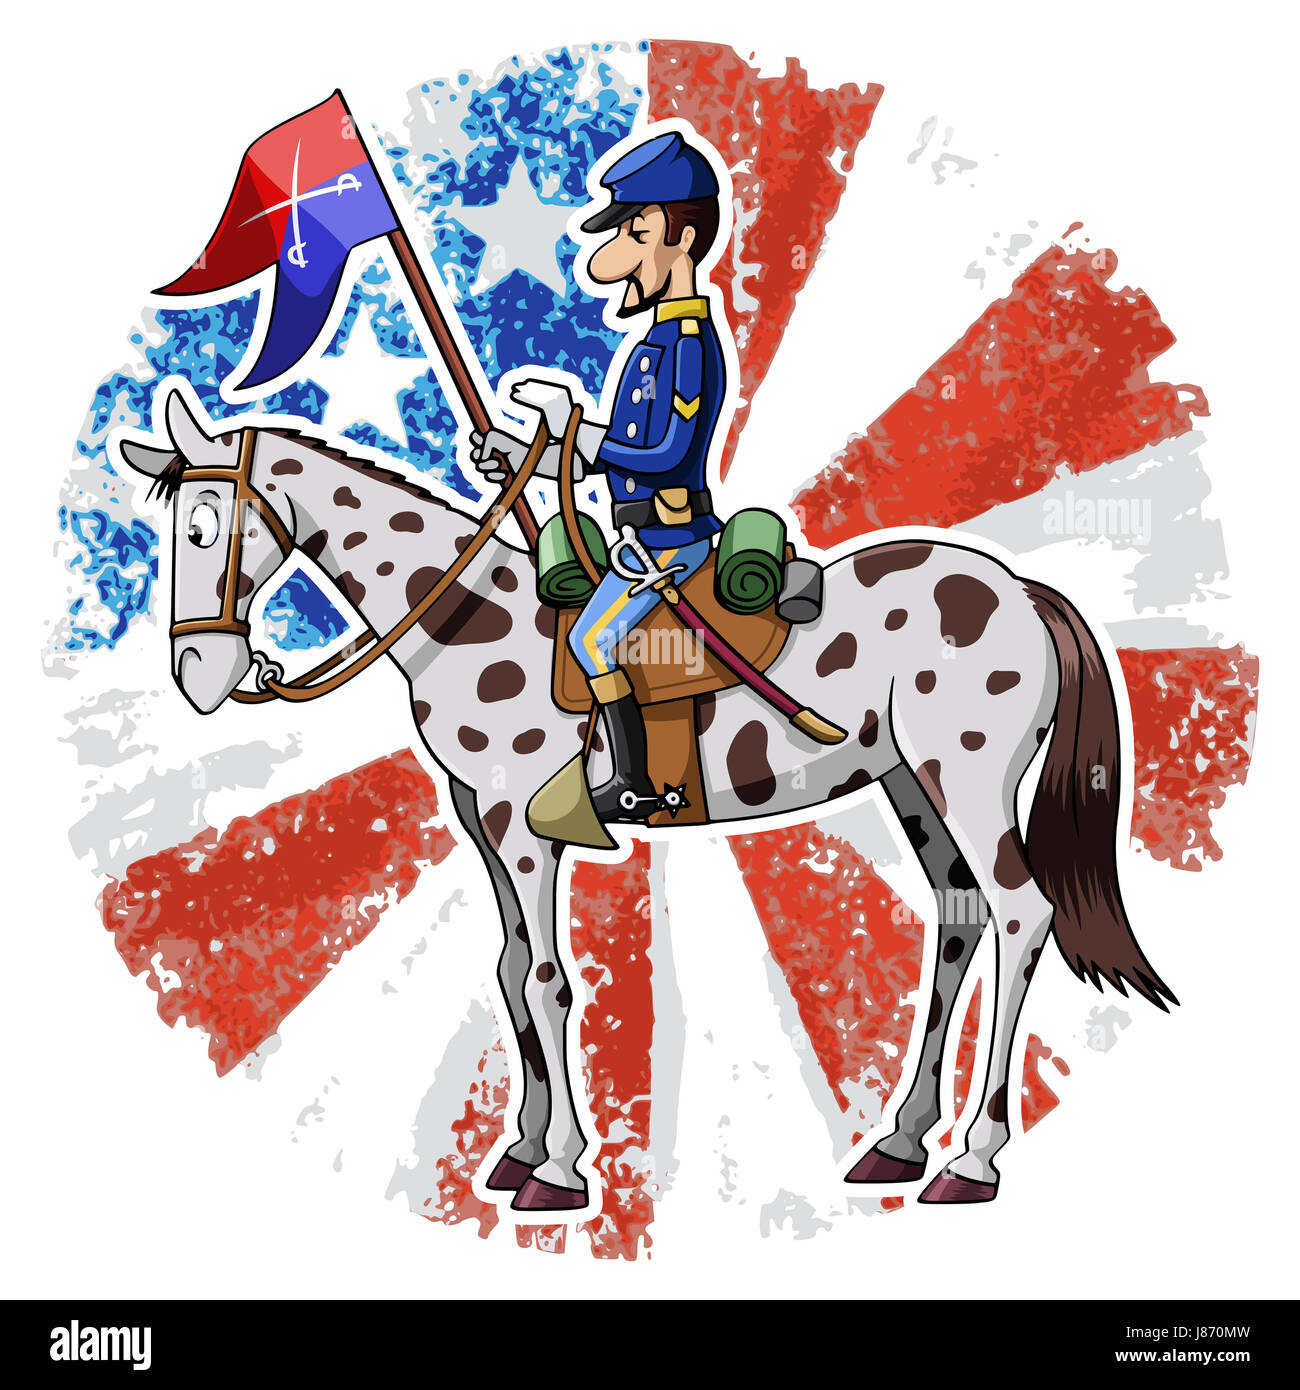 cavalry, horse, battle, army, soldier, uniform, america, illustration, pony, - Stock Image